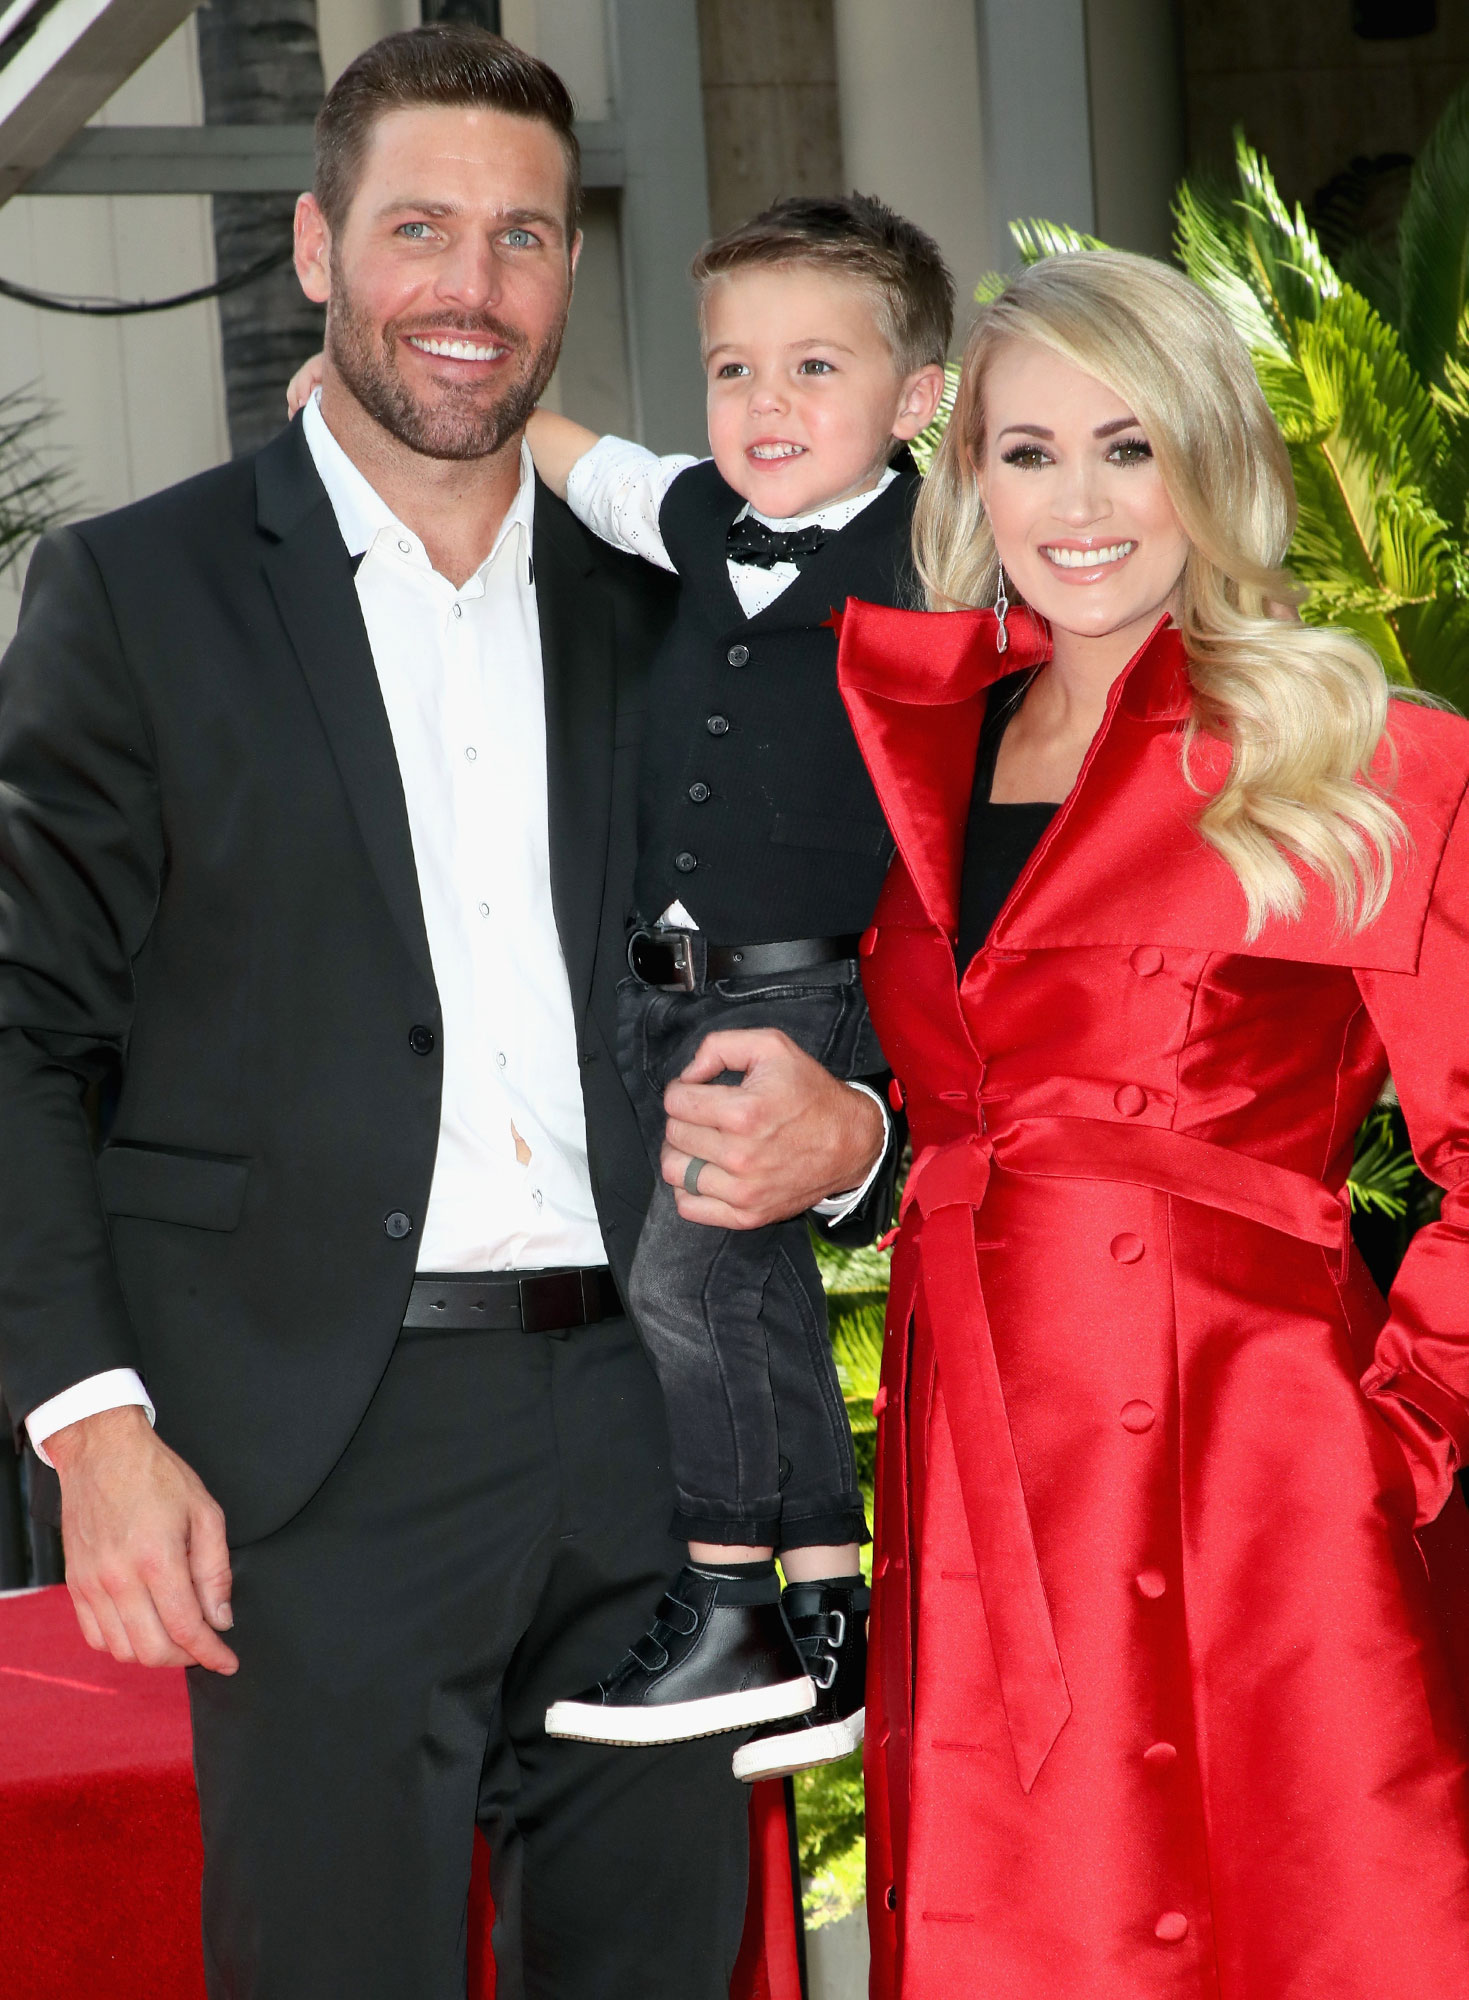 Carrie Underwood's Son Thinks She Is 70 and Doesn't Realize She's a Star, His Homework Reveals